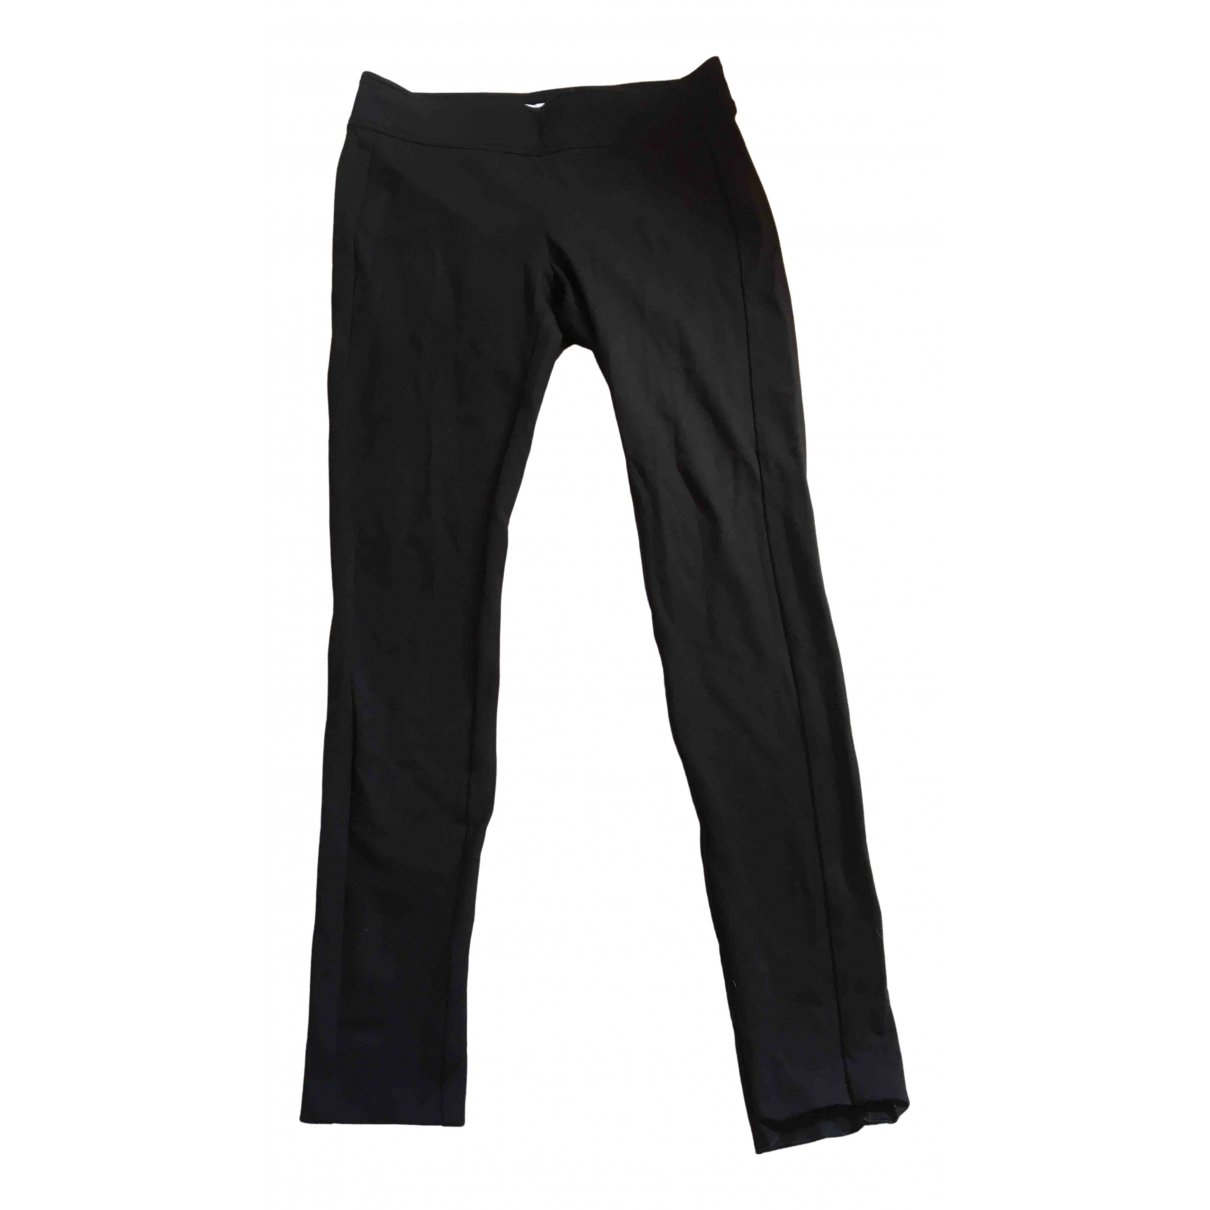 Diane Von Furstenberg \N Black Trousers for Women 8 US